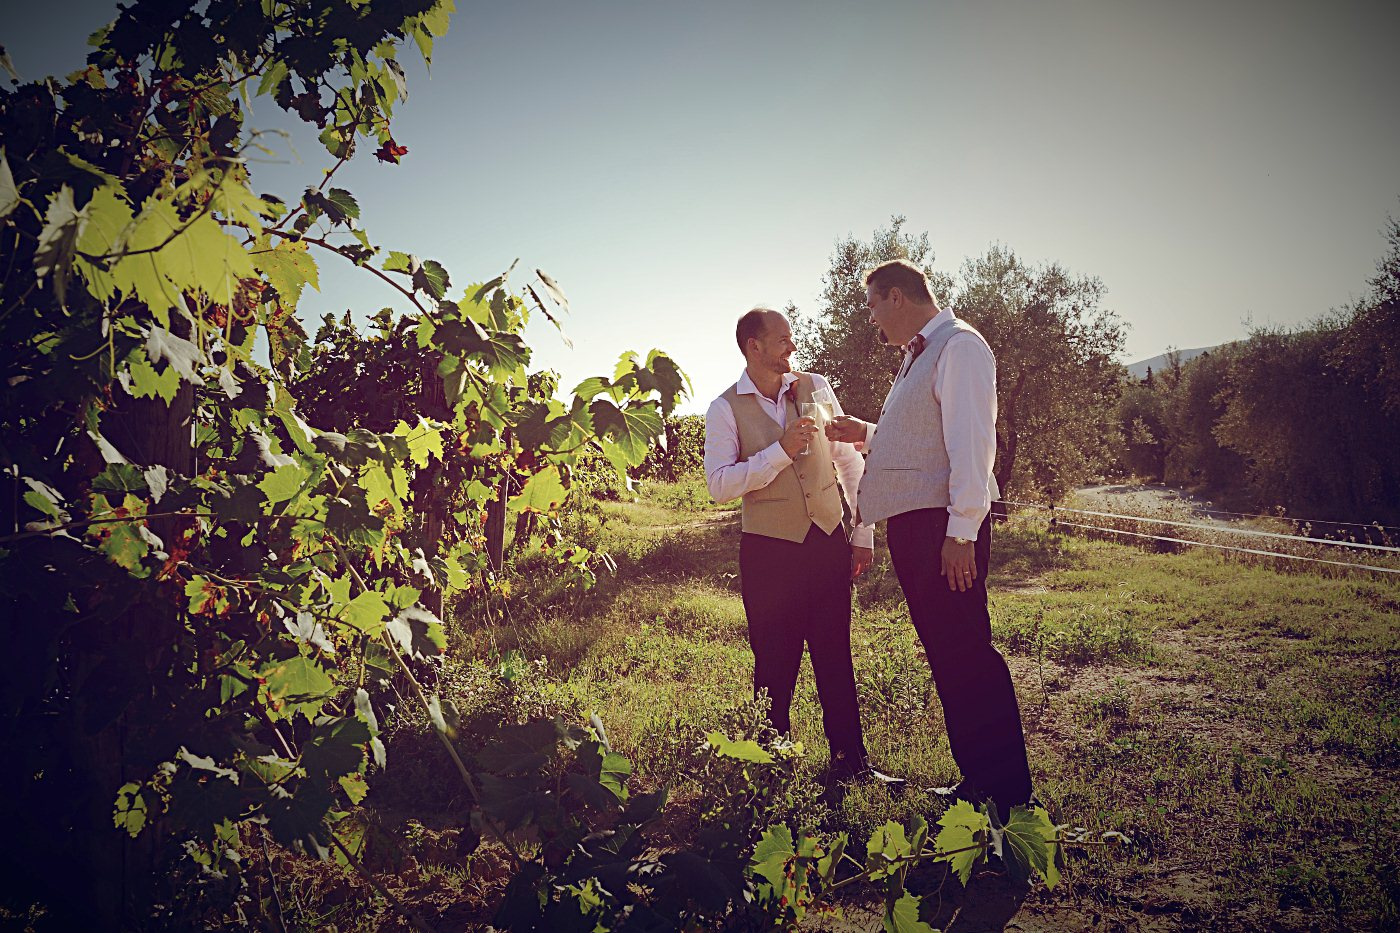 gay wedding photographer tuscany_16.jpg